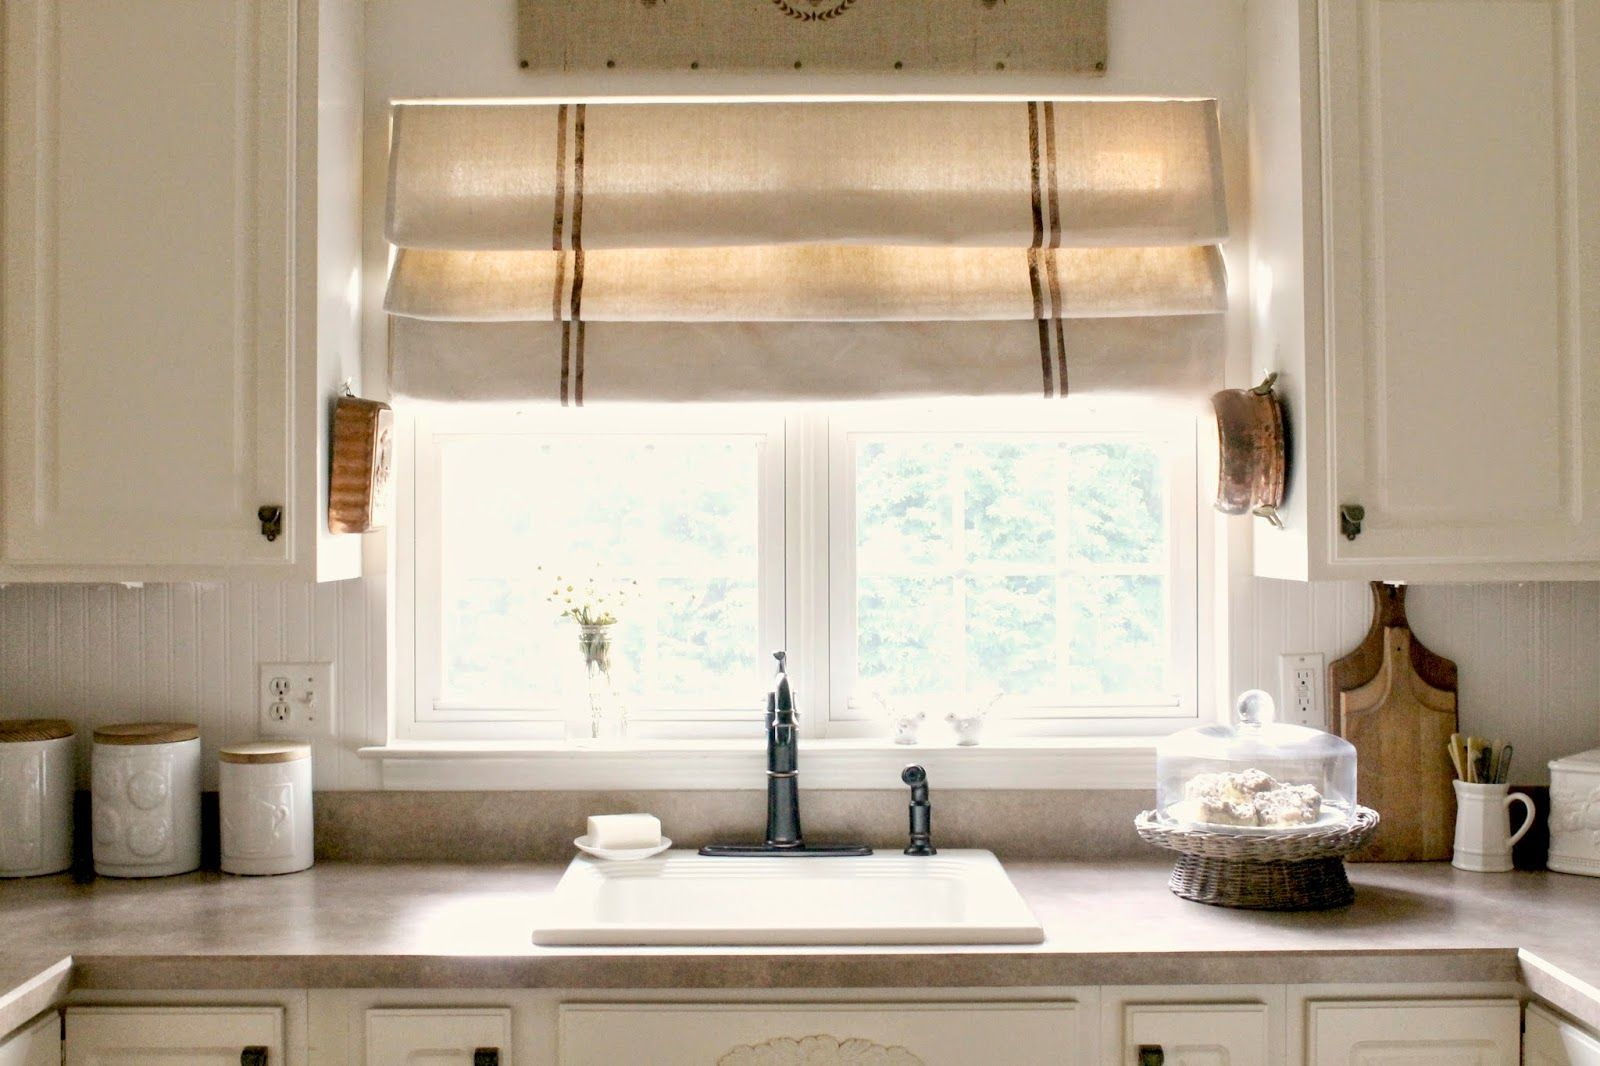 Diy Drop Cloth Roman Shade (Kateu0027s Place)